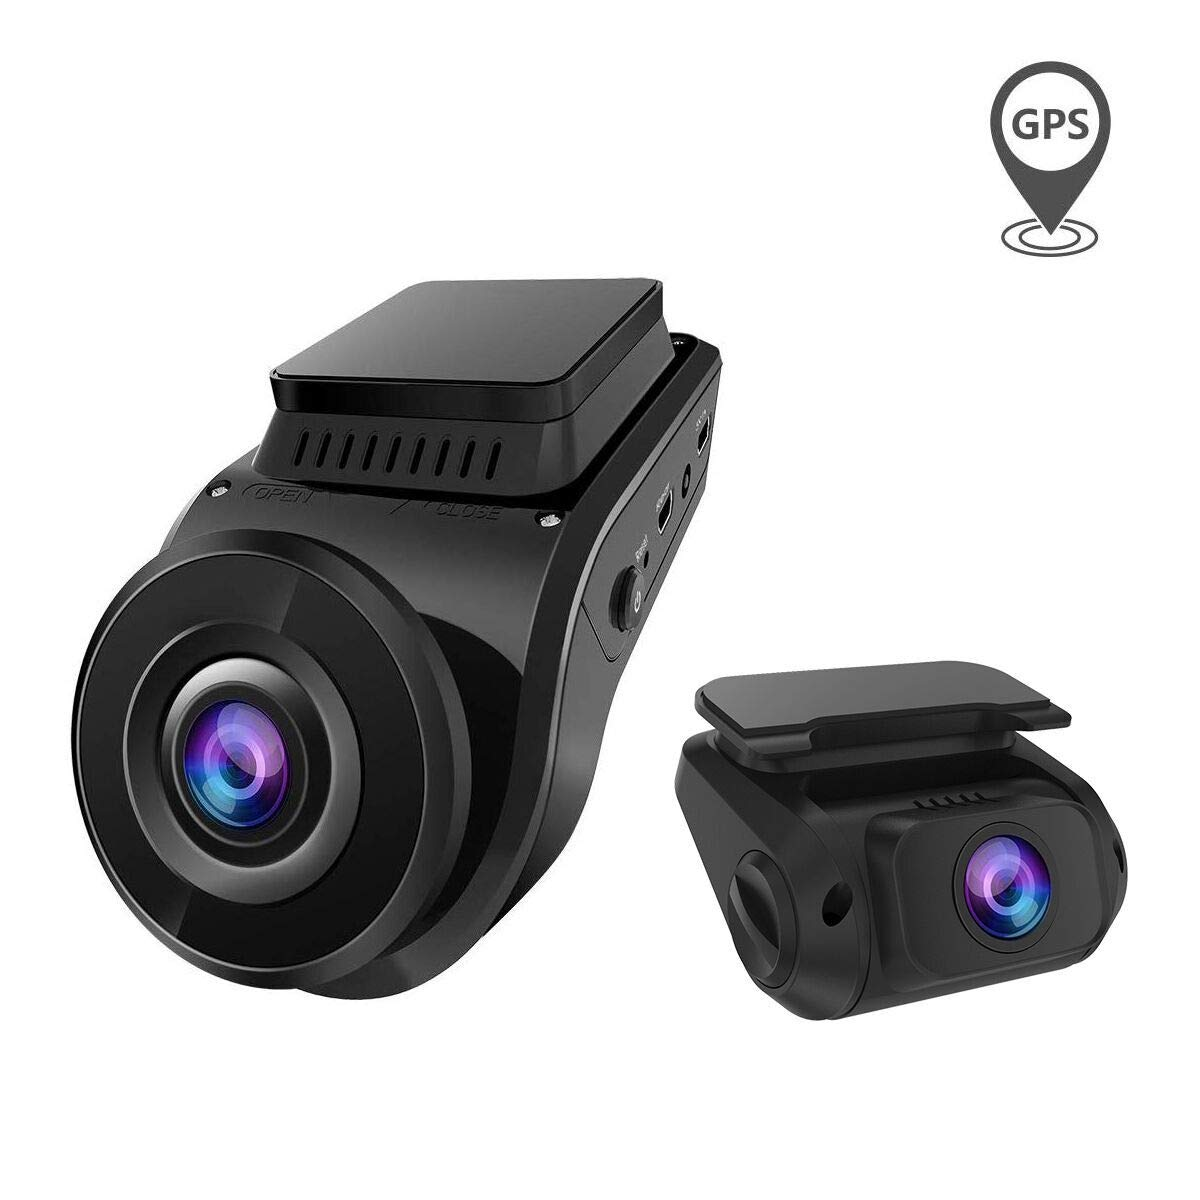 Built in GPS Dual Dash Cam, Vantrue S1 Dual 1080P Front and Rear Dash Camera, Super Capacitor 2'' LCD 2880x2160P Single Front Hidden Car Camera with Sony Night Vision, Parking Mode, Support 256G Max by VANTRUE